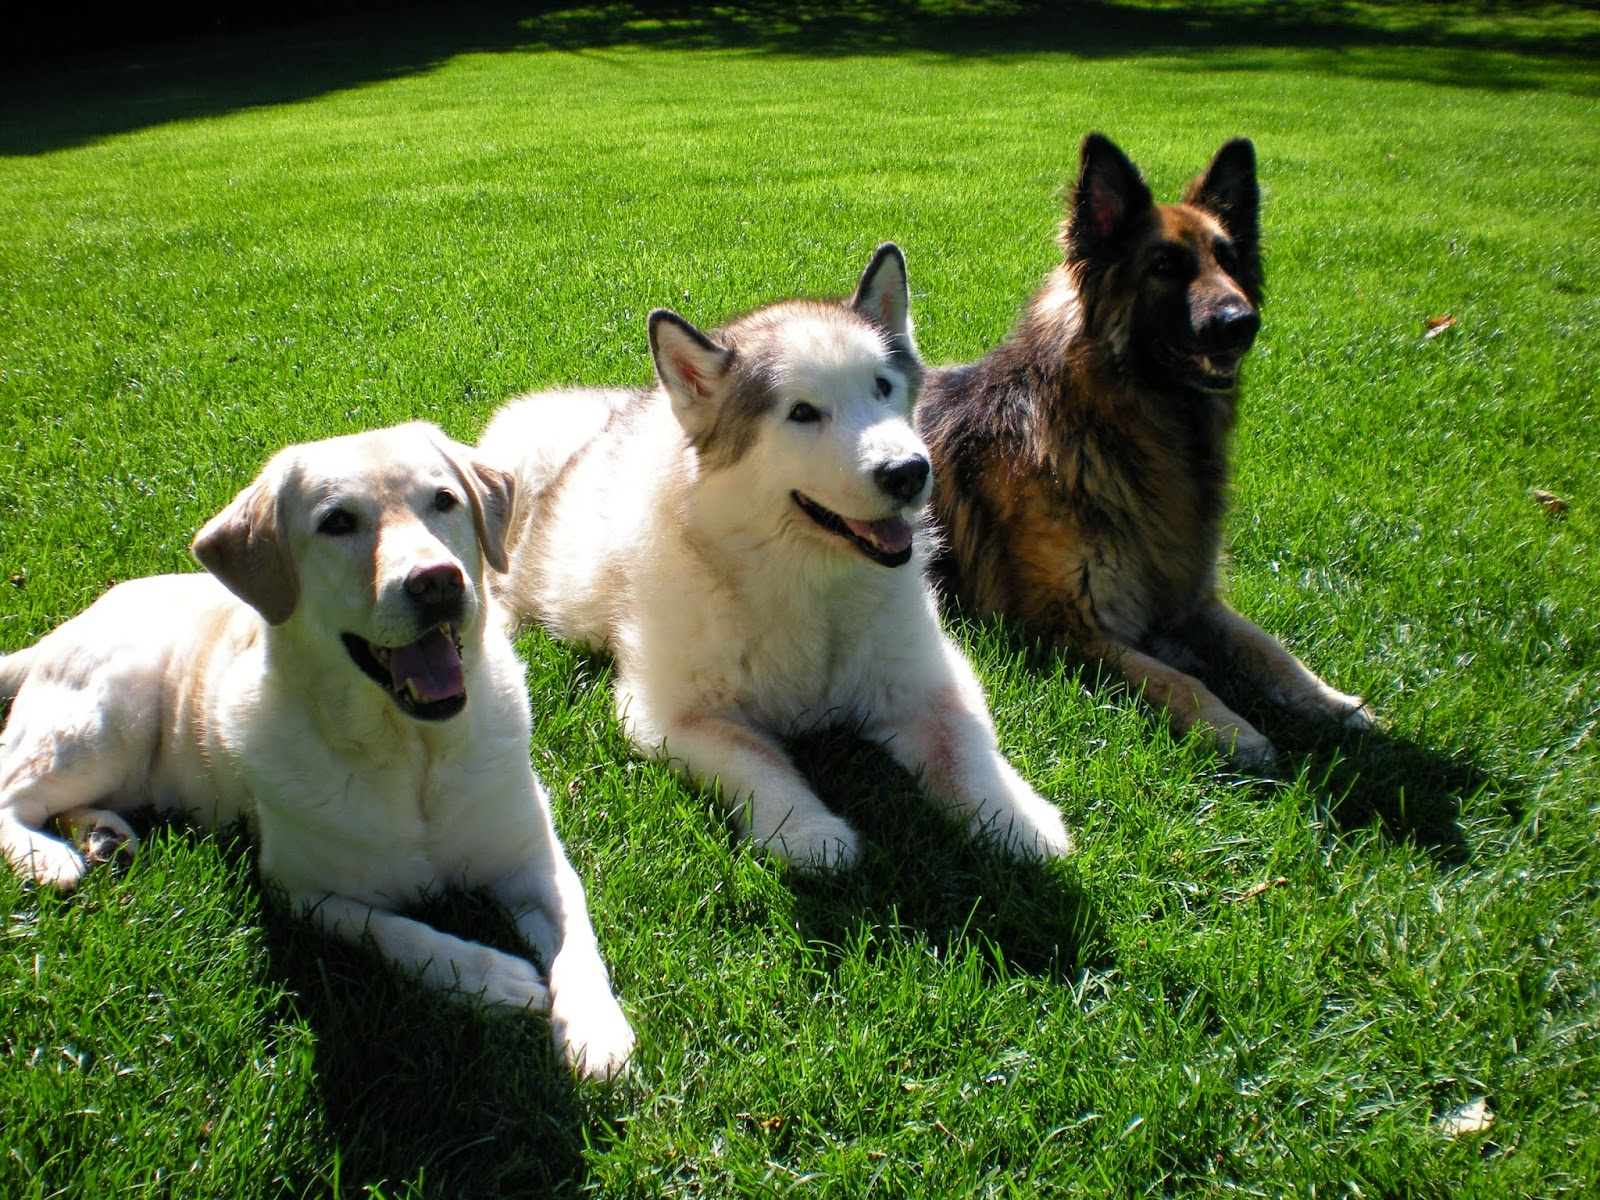 Buster, Casper and Kylie